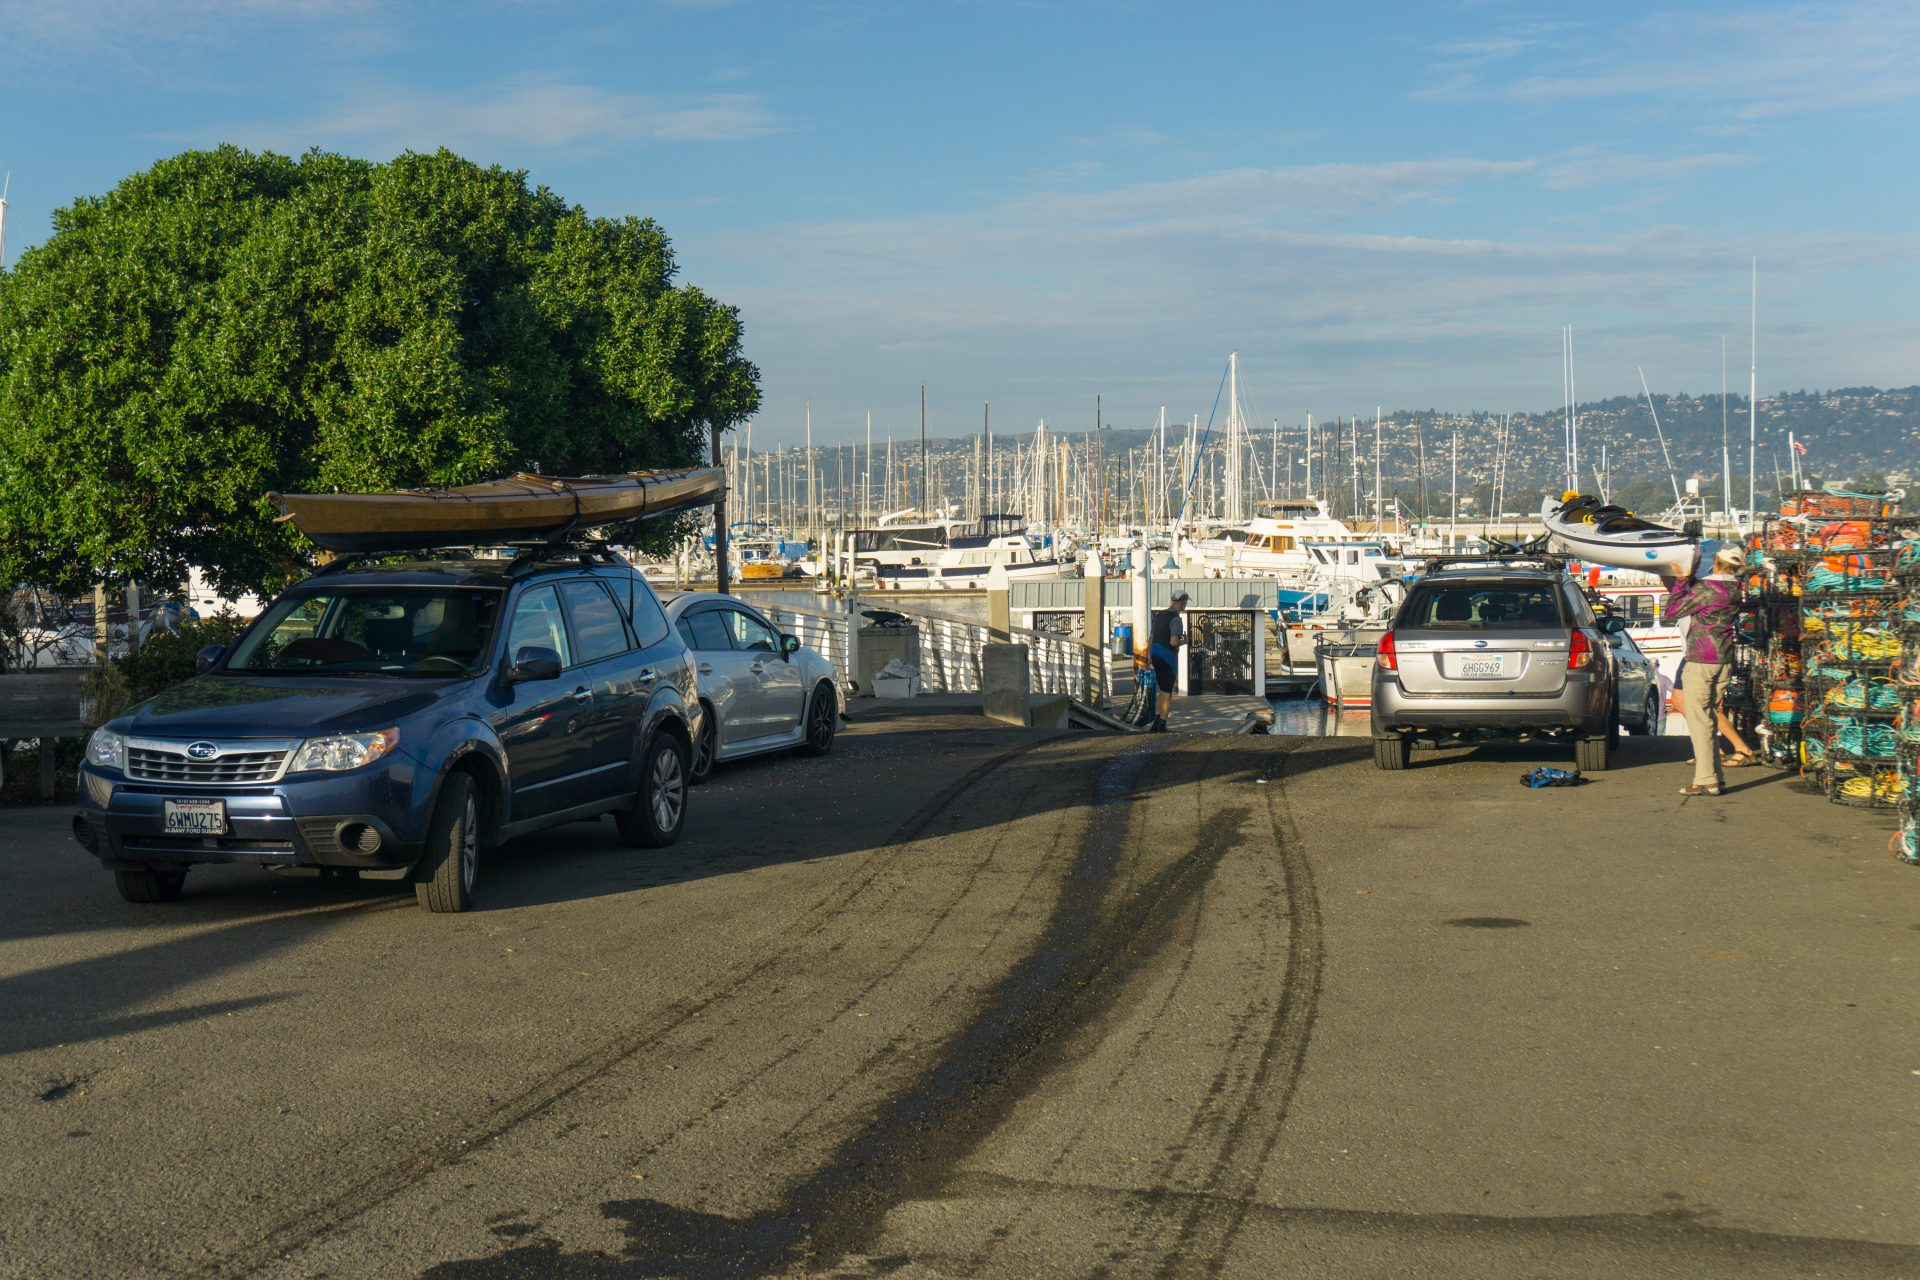 two Subaru station wagons with kayaks on top, next to boat ramp entrance, with boats in a marina in the distance